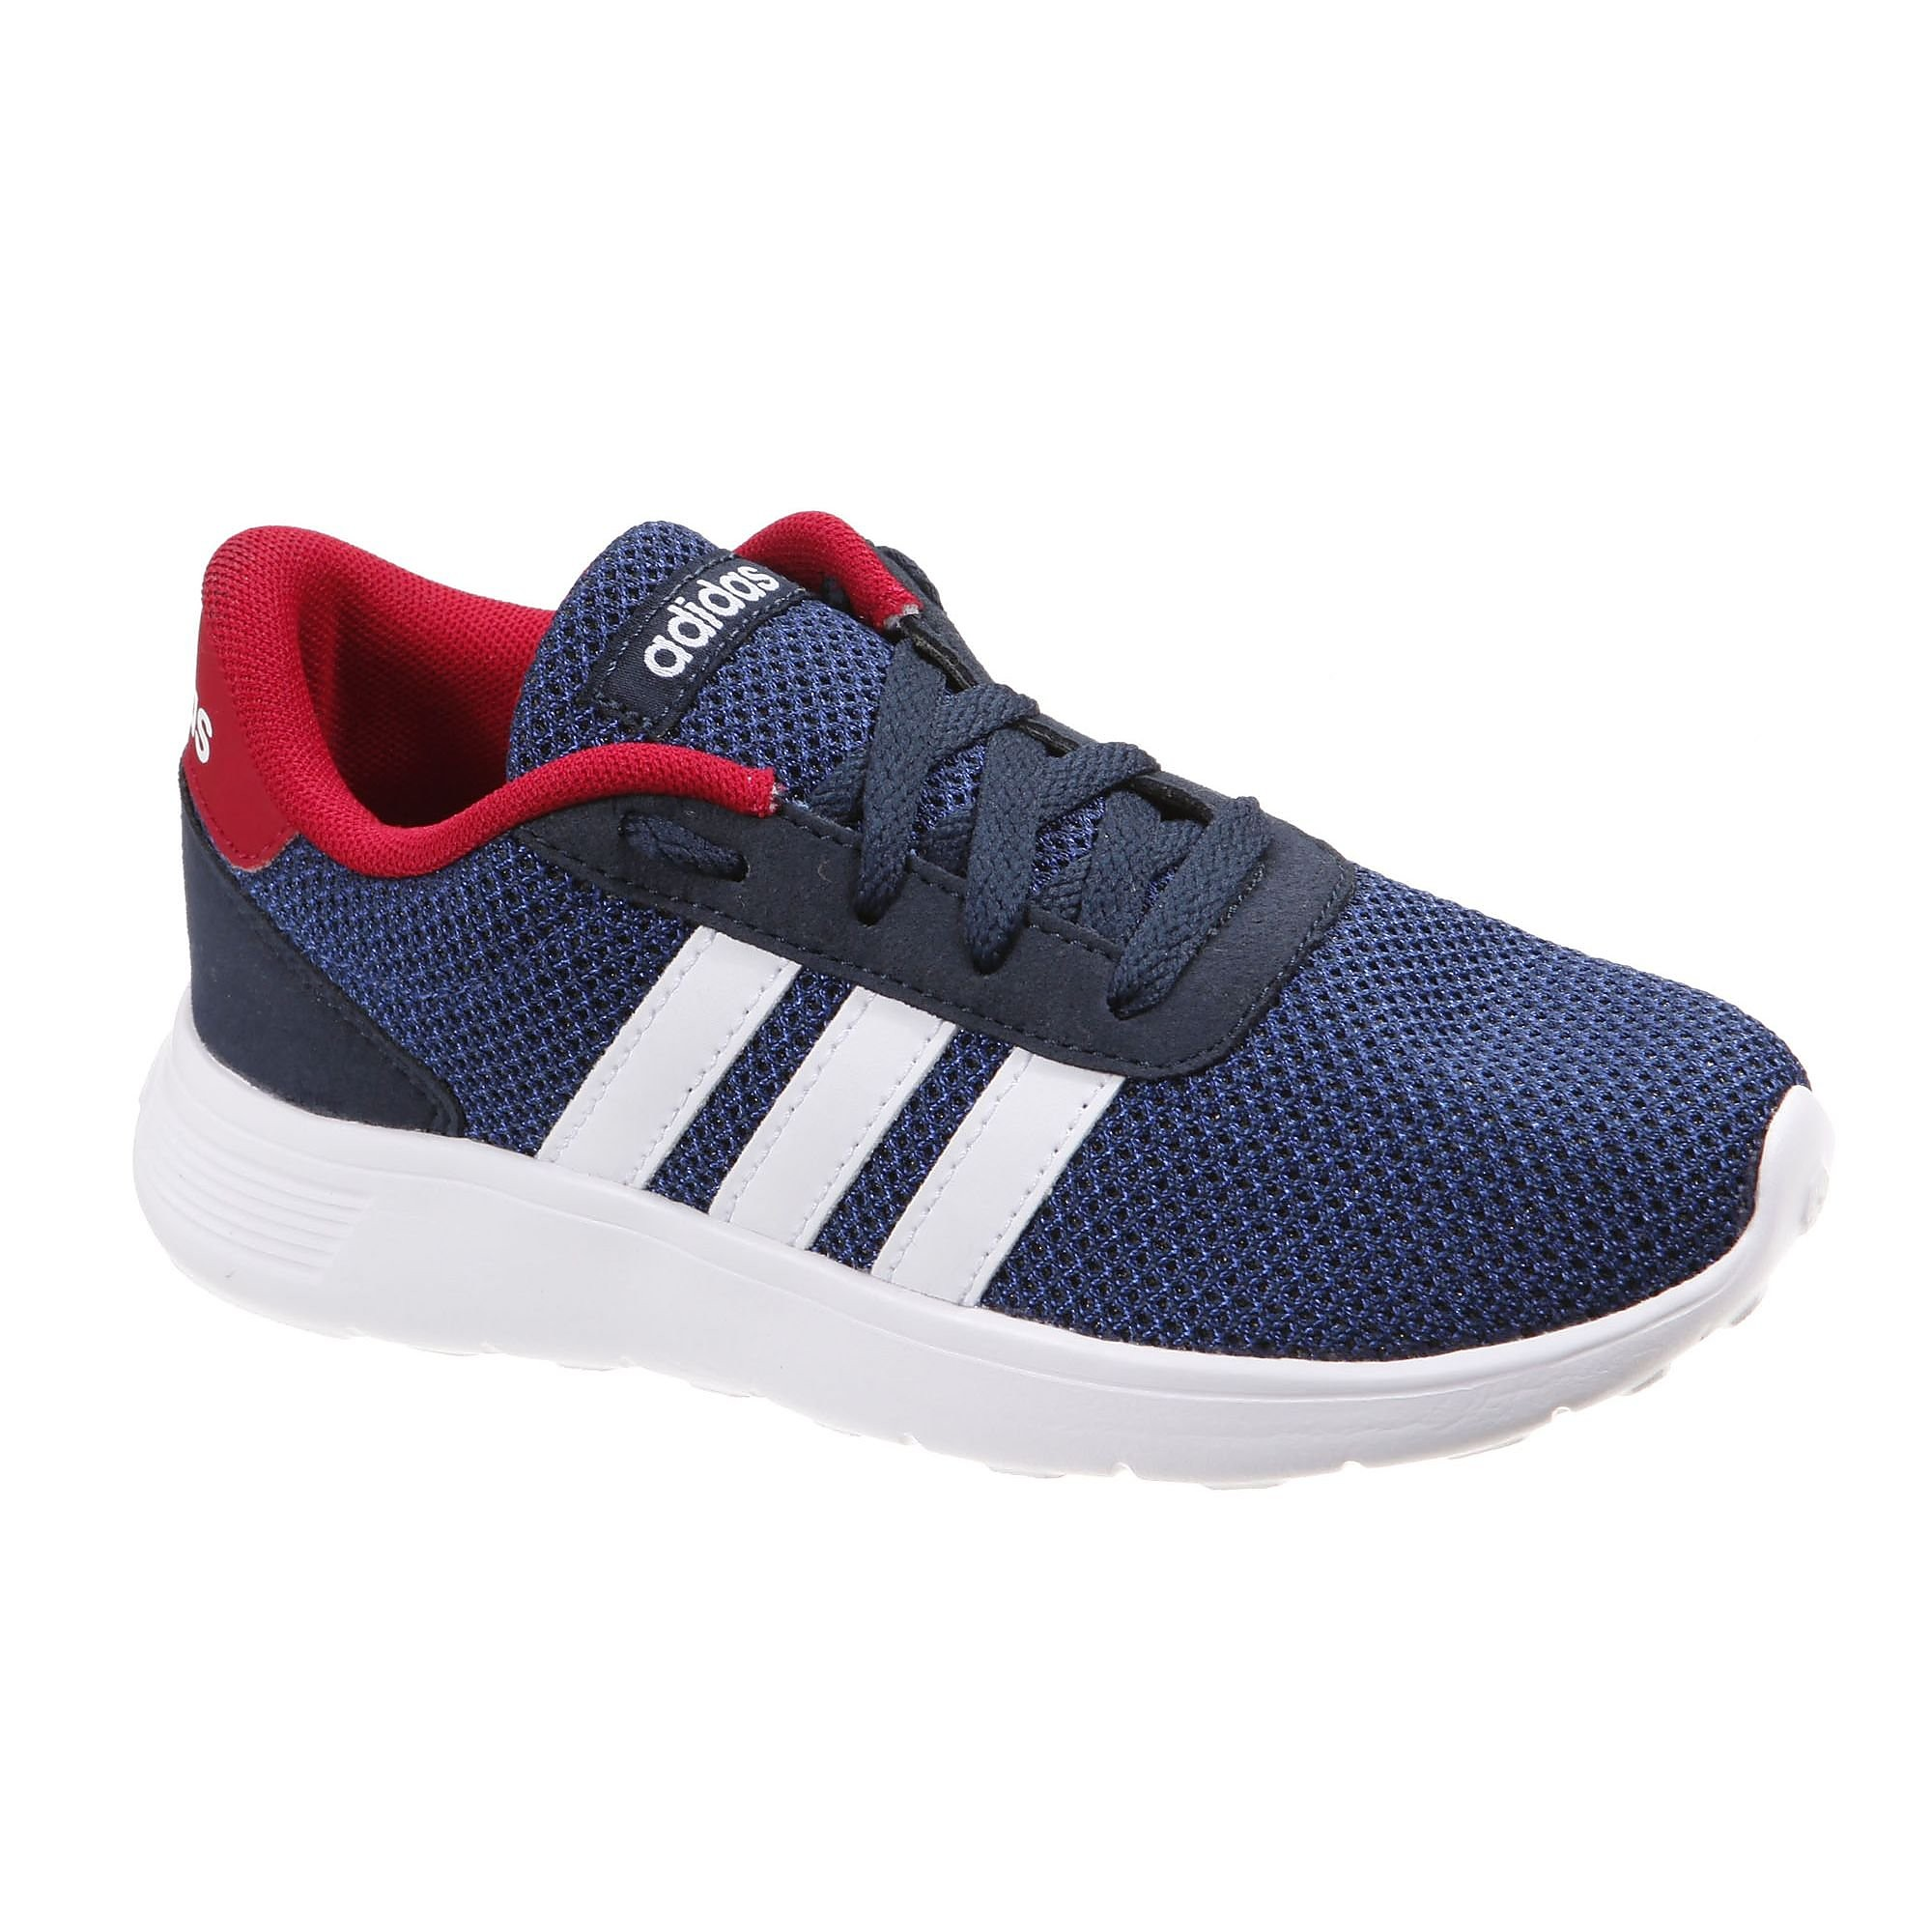 sneakers adidas Adidas lite racer k aw5124